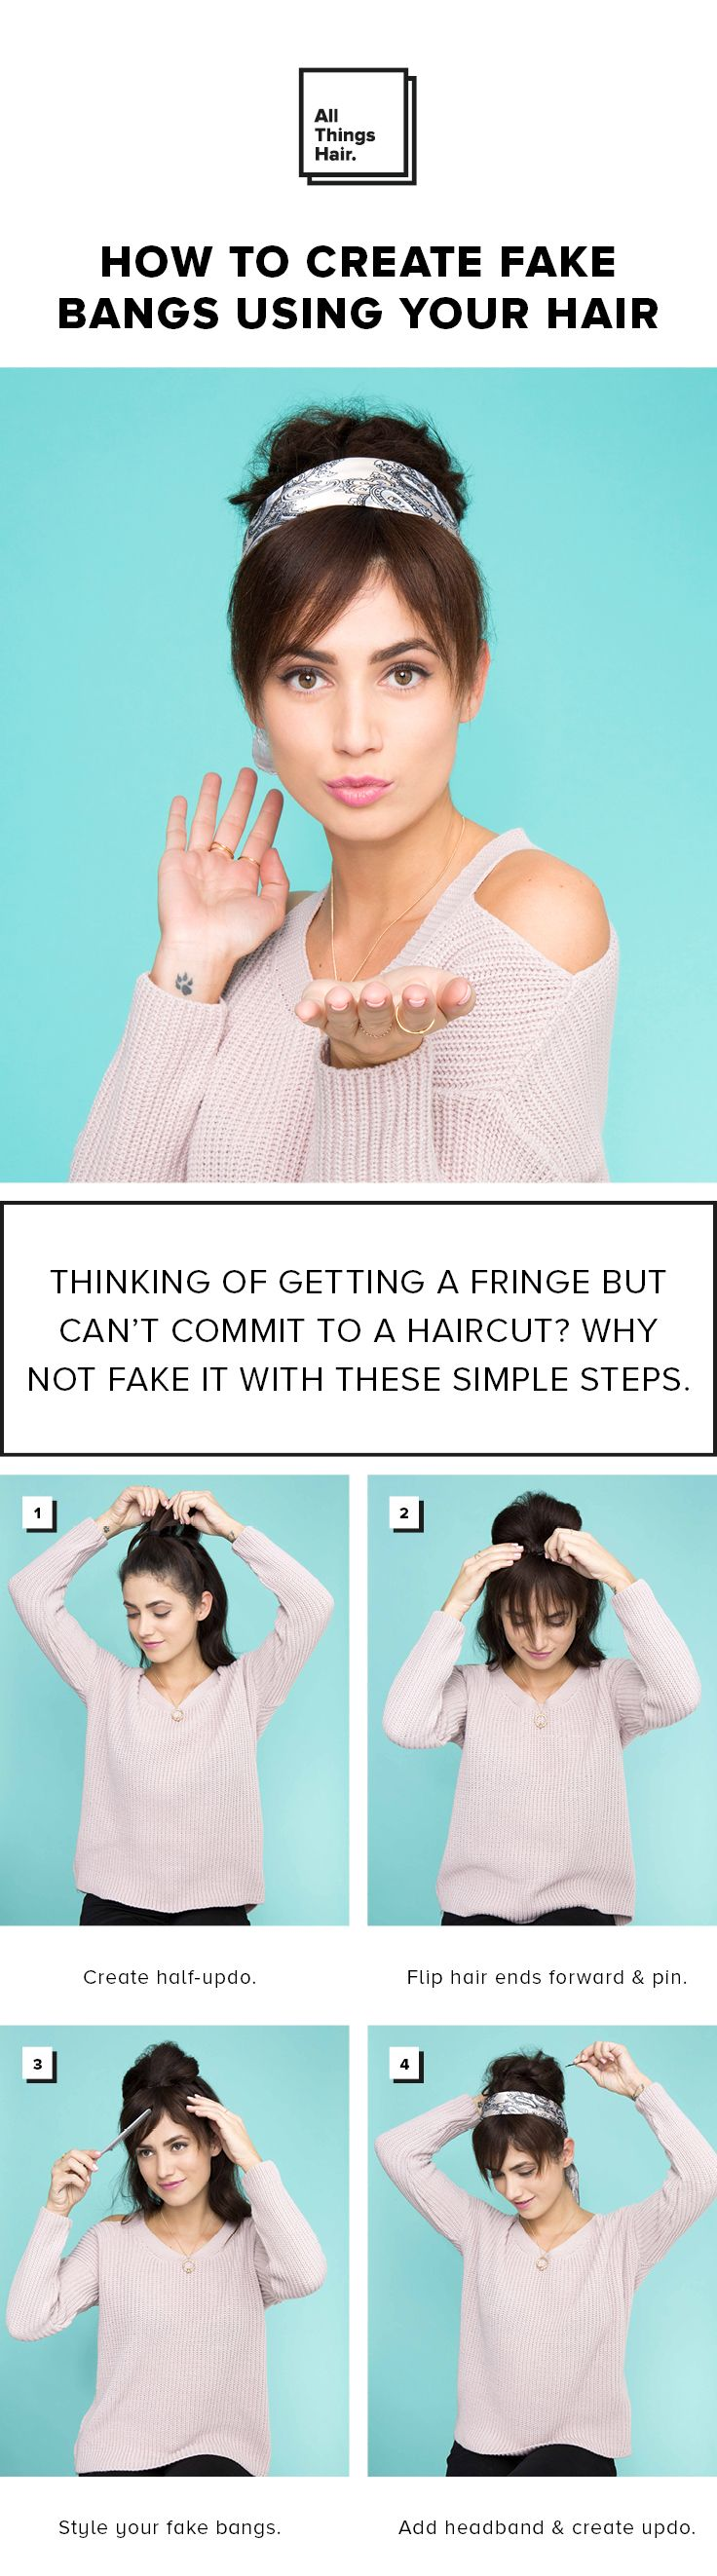 Ready for a bangin' new look? Here's how you create fake bangs with your own hair. #Ad